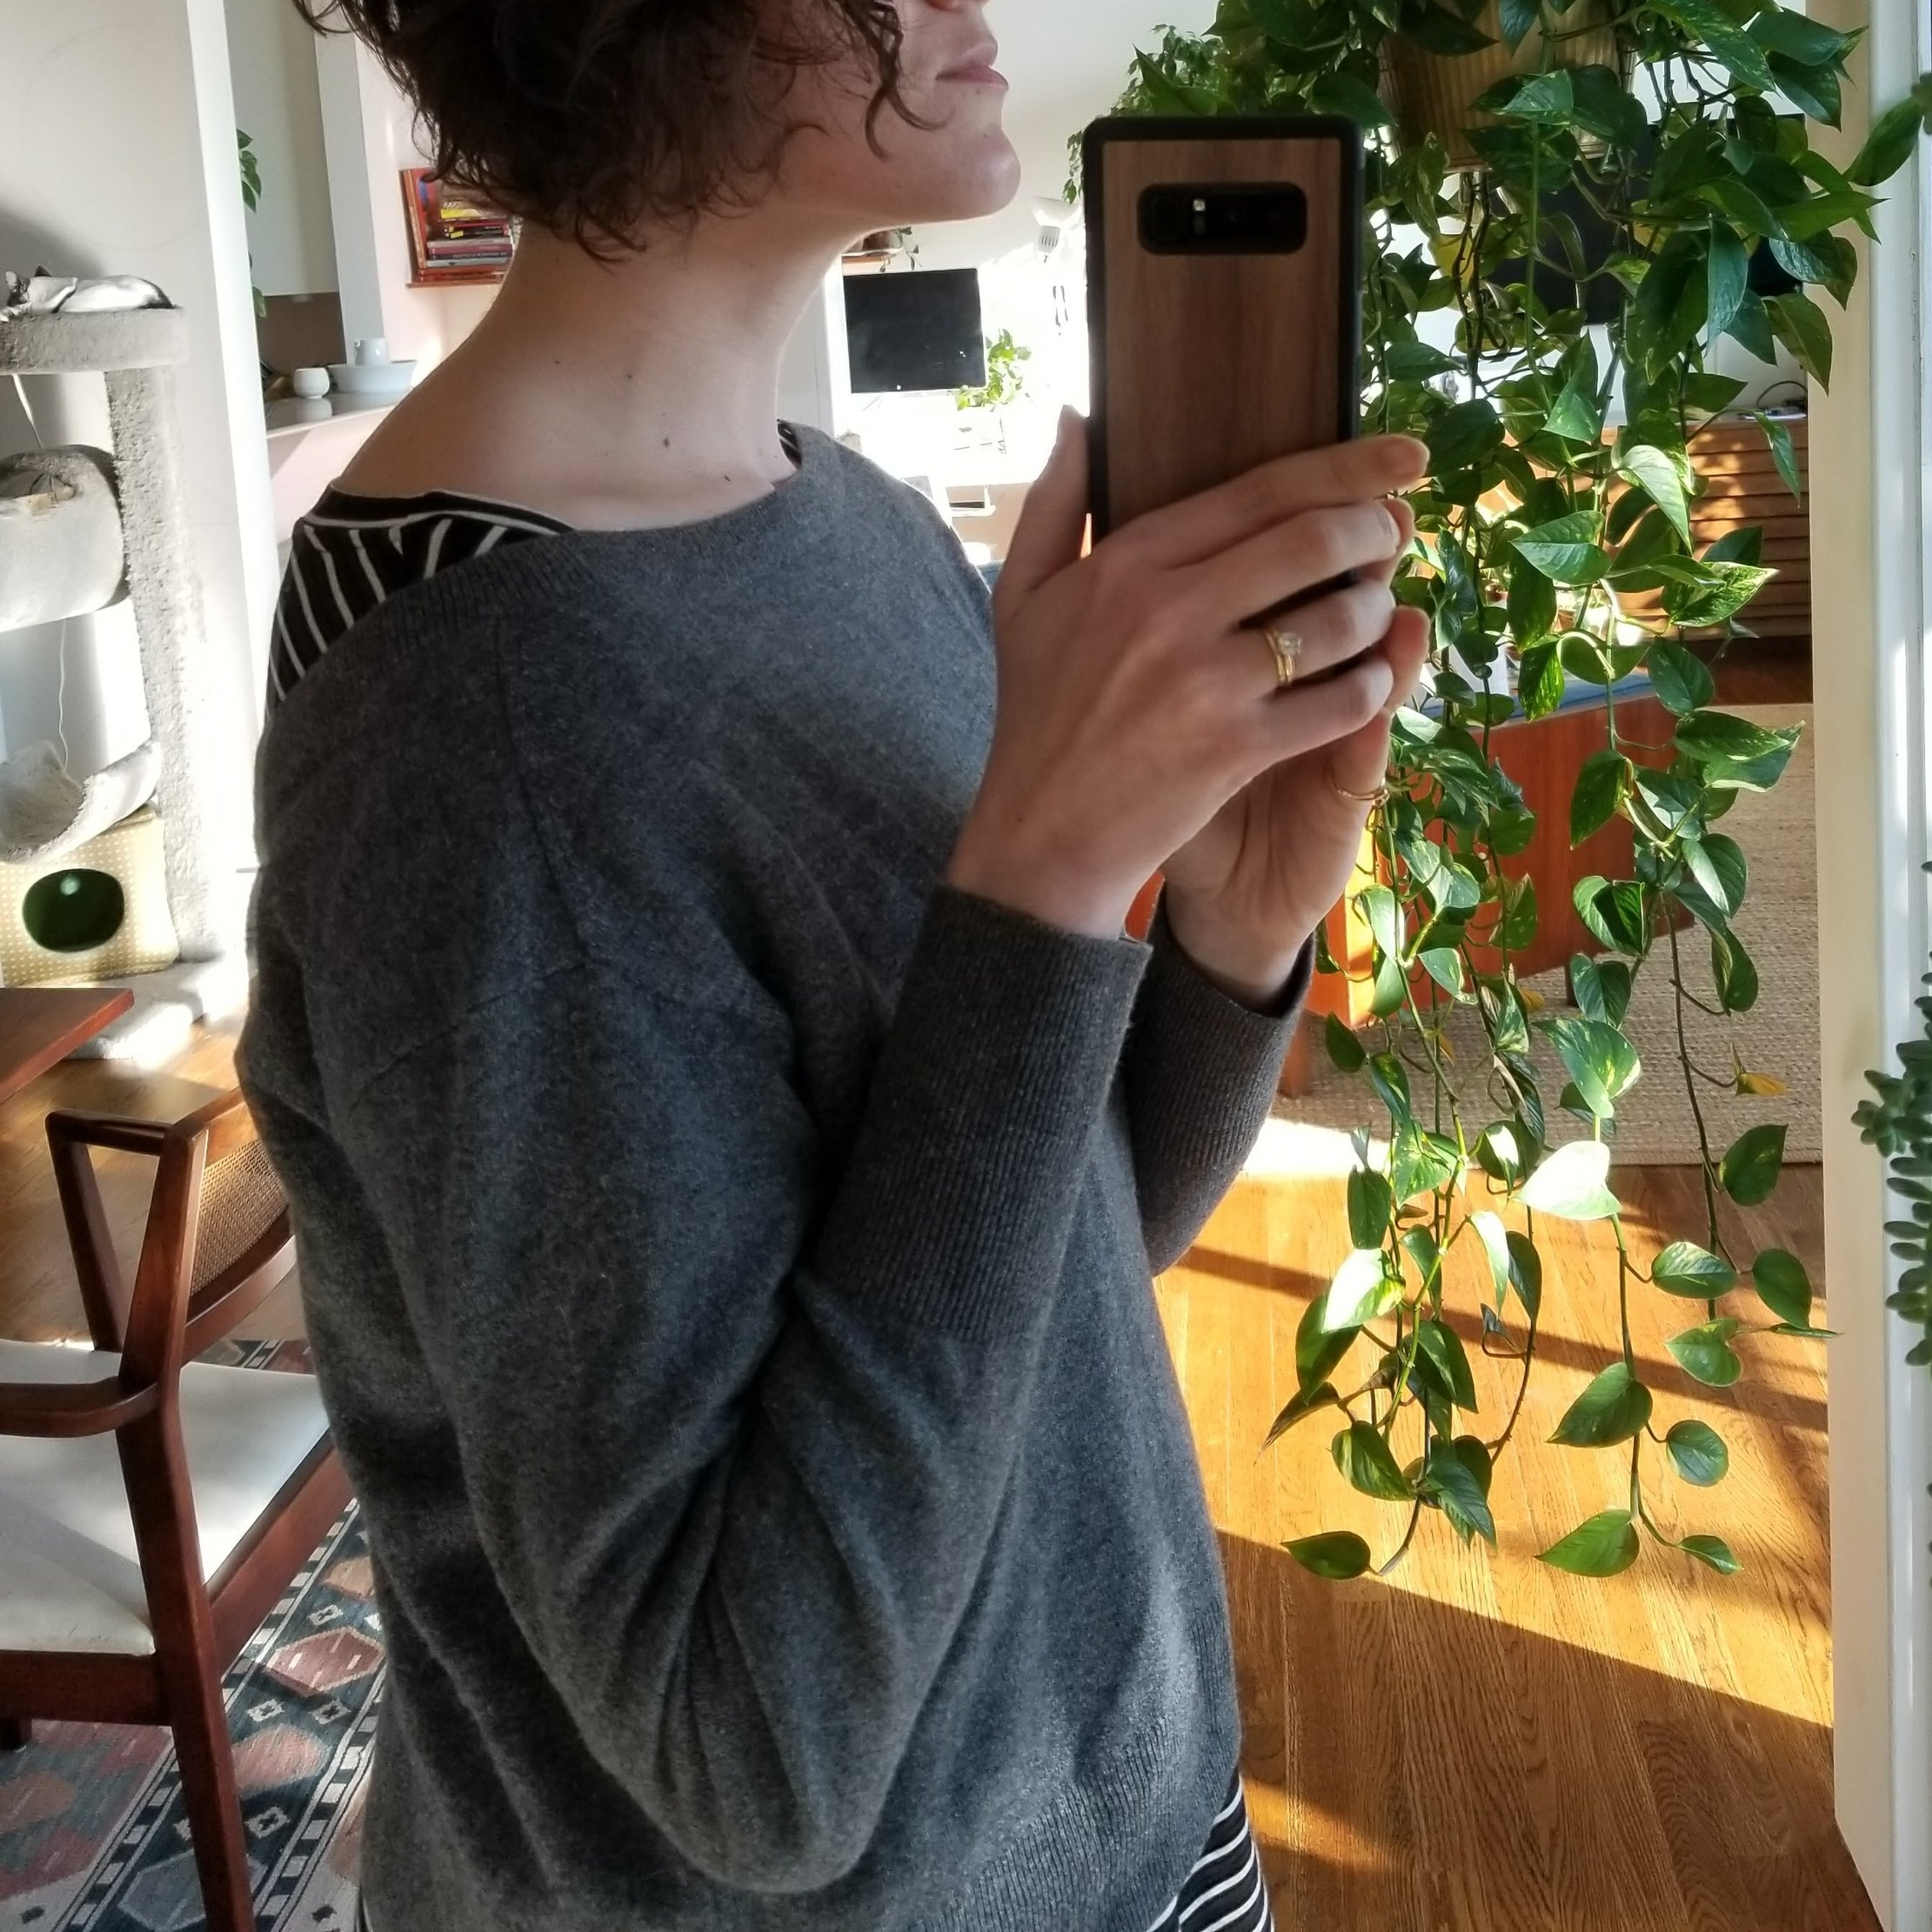 Backwards Everlane V-neck sweater over Amour Vert top. Cozy and weirdly graphic in a way I like a lot.